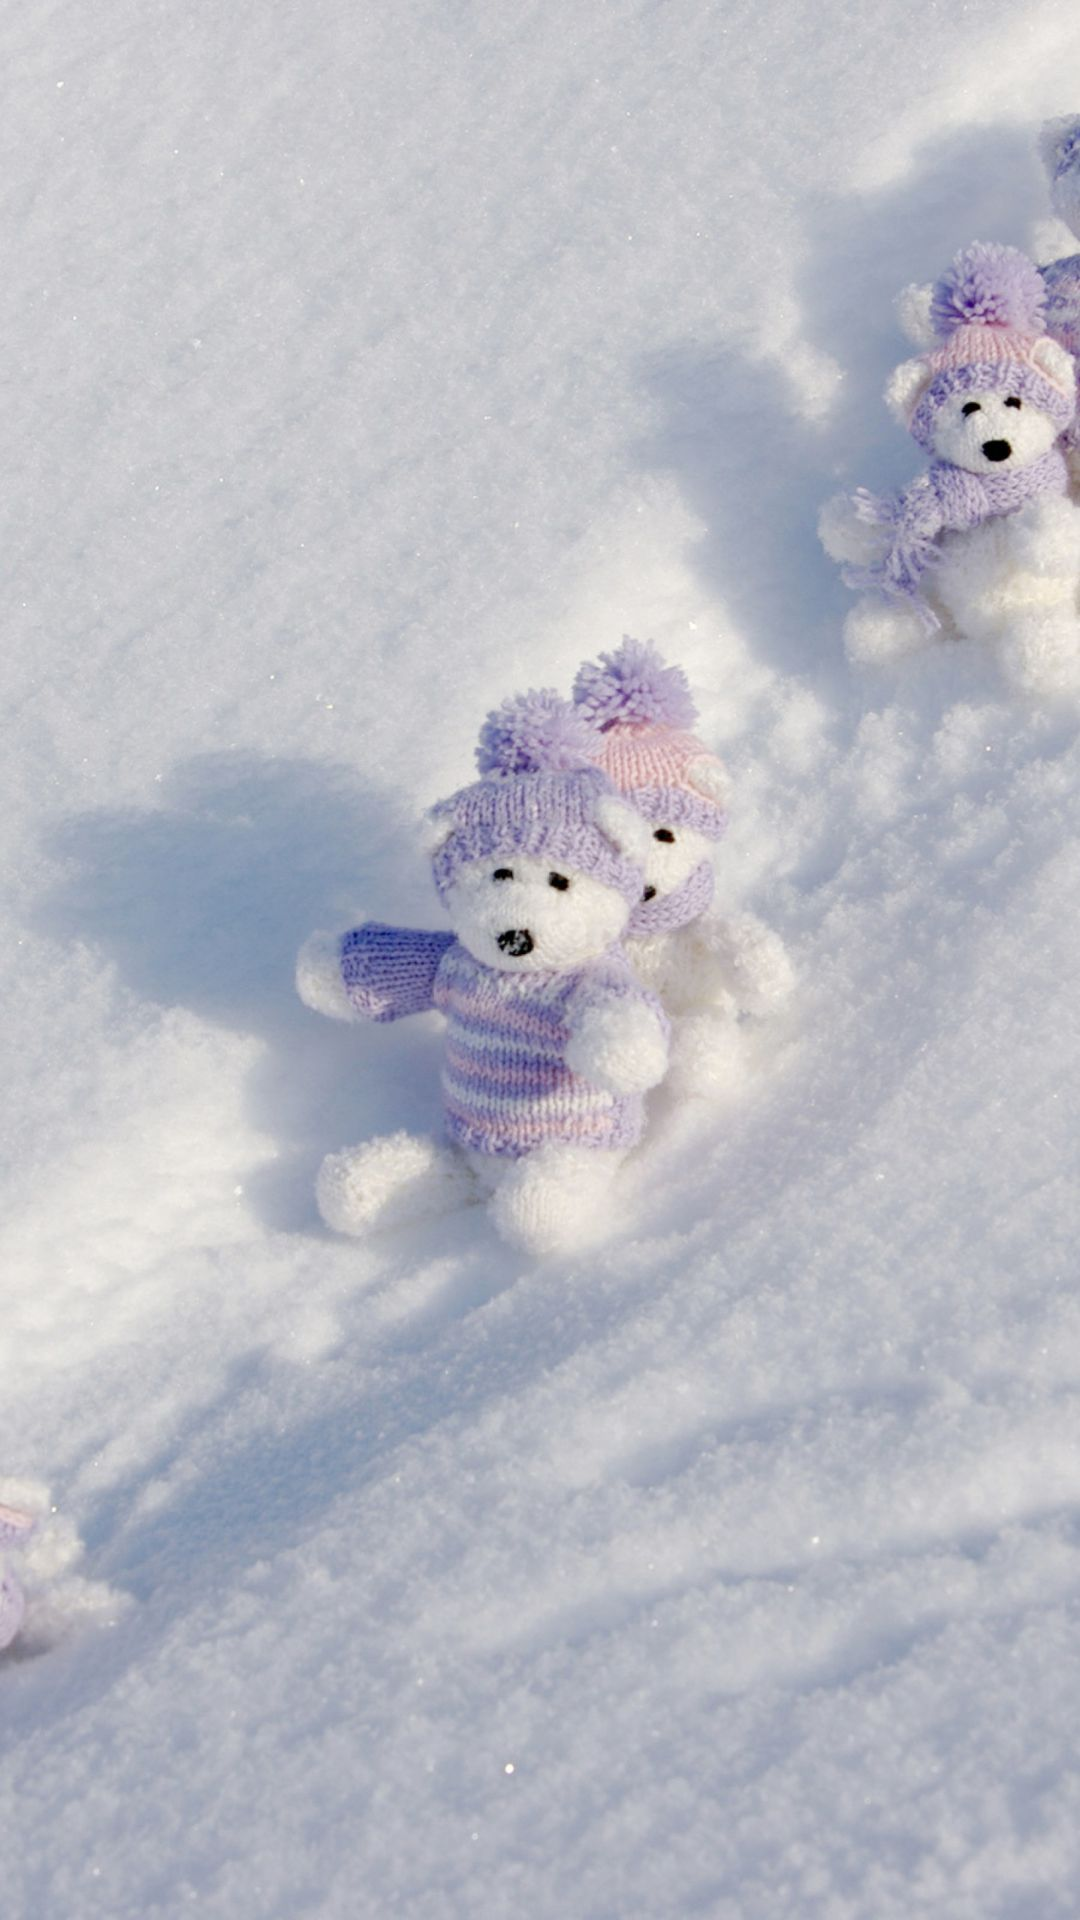 White Teddy Bears Snow Game Wallpaper For Iphone Plus